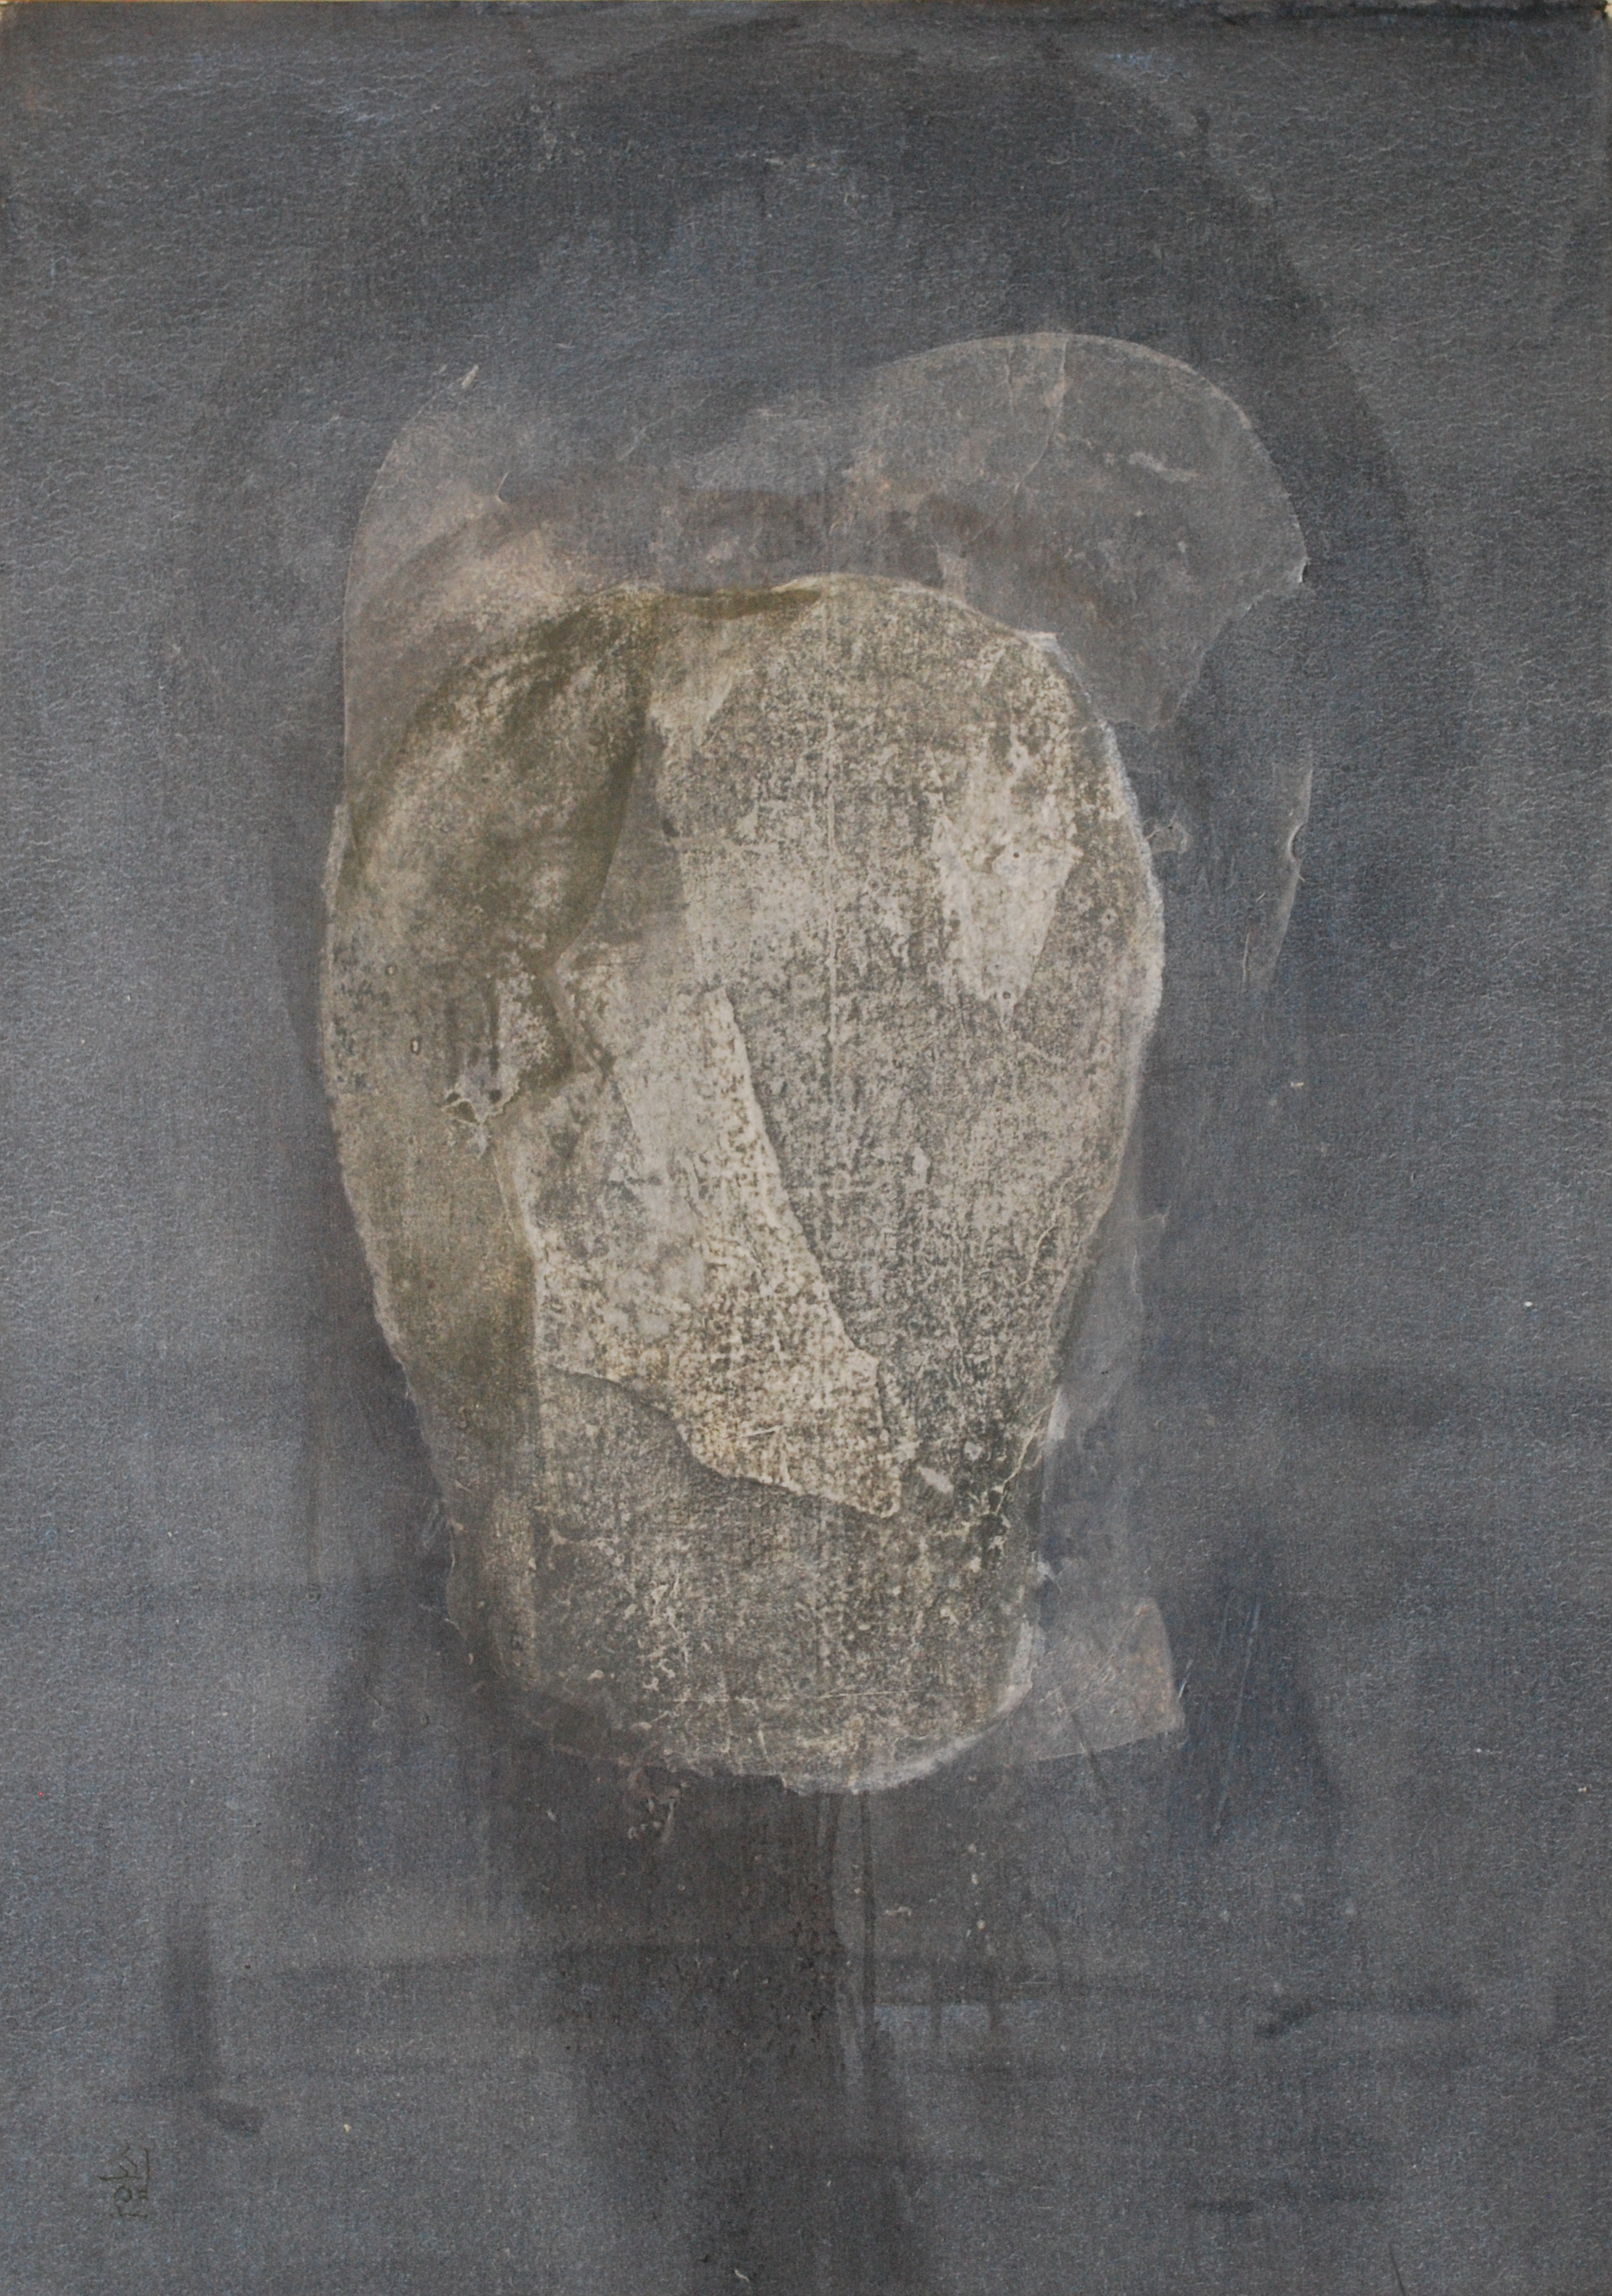 SoHyun Bae, Wrapped Shards: Vessel #1, 2003, rice-paper and pure pigment on canvas, 40 x 30 inches